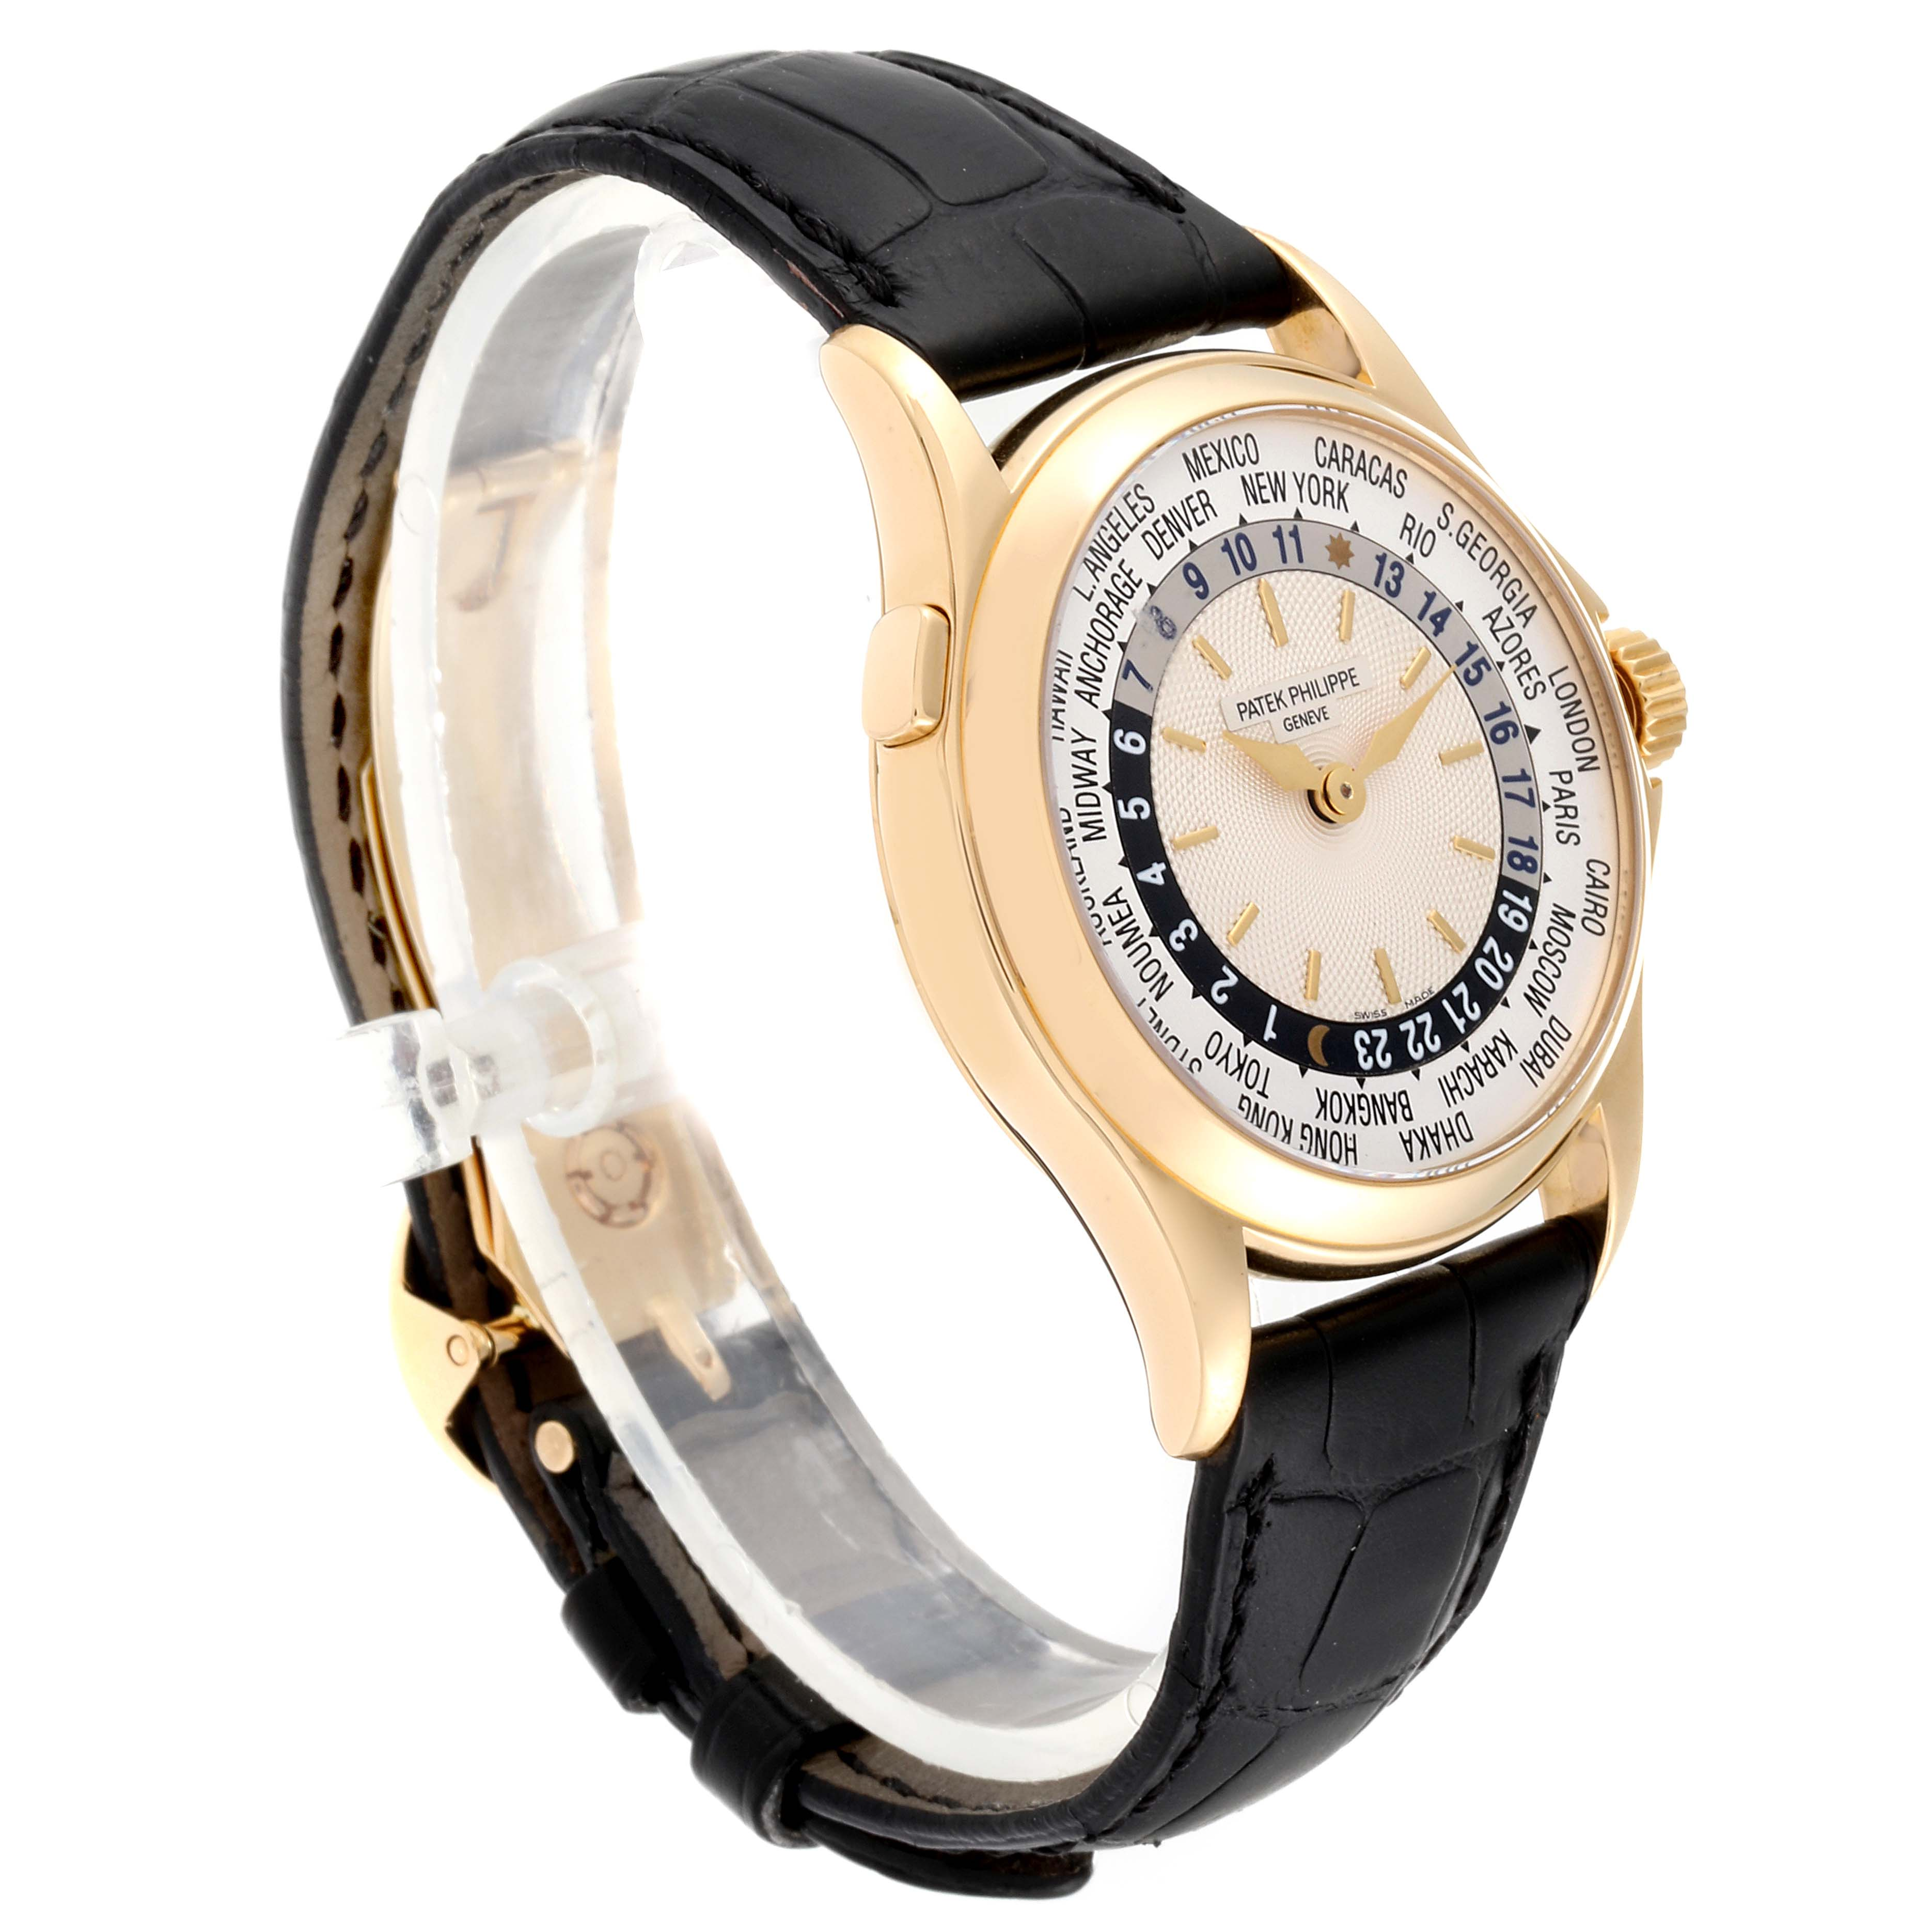 Patek Philippe World Time Complications Yellow Gold Watch 5110 Box Papers PARTIAL PAYMENT SwissWatchExpo